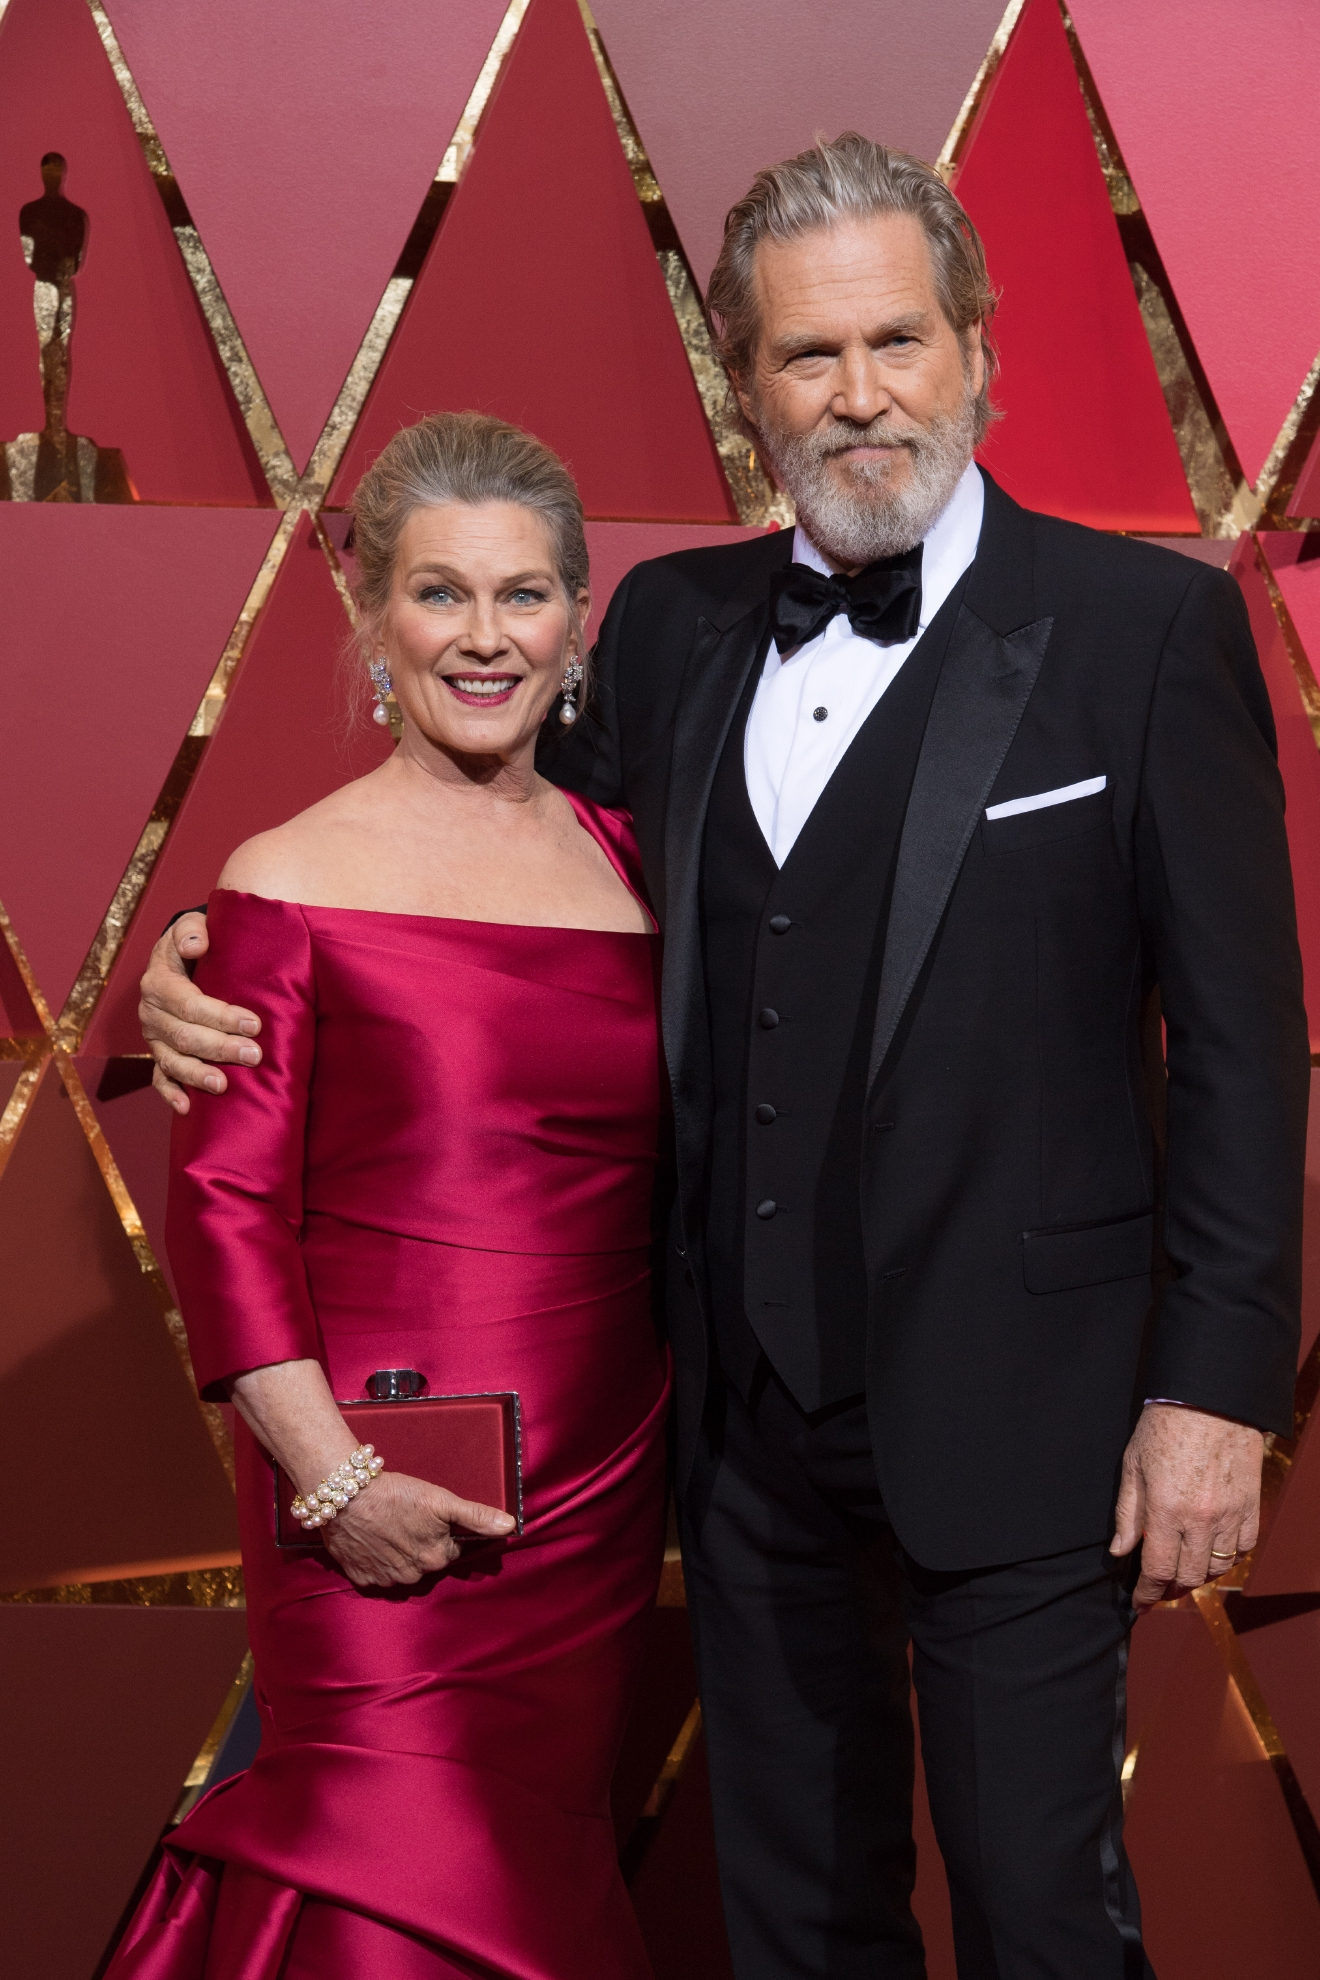 #16: Jeff Bridges. The guy is Jeff freakin' Bridges. COME ON! (Image: AMPAS)